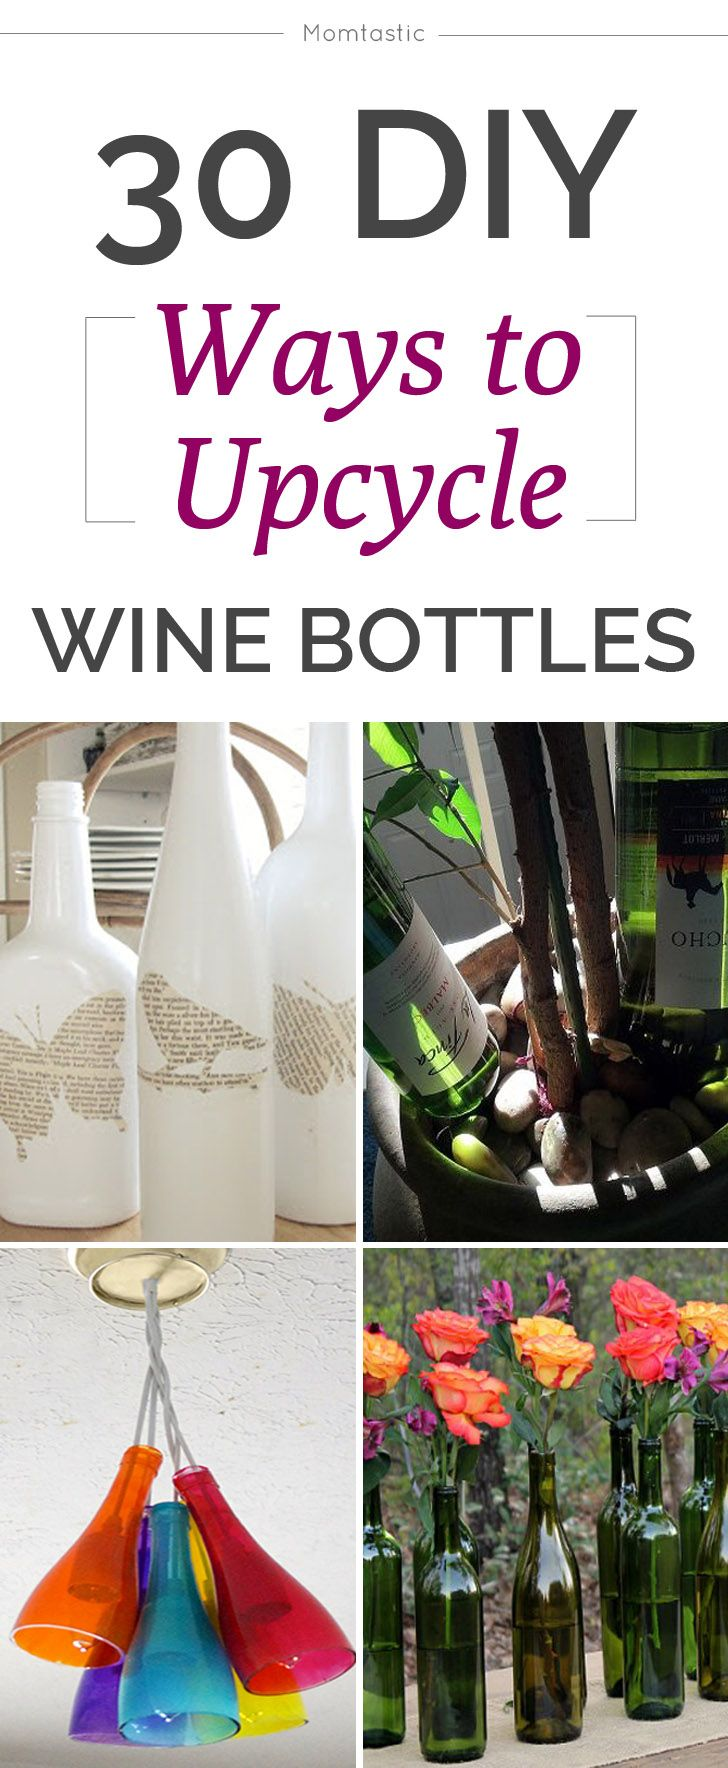 30 crafty ways to upcycle wine bottles! #diy